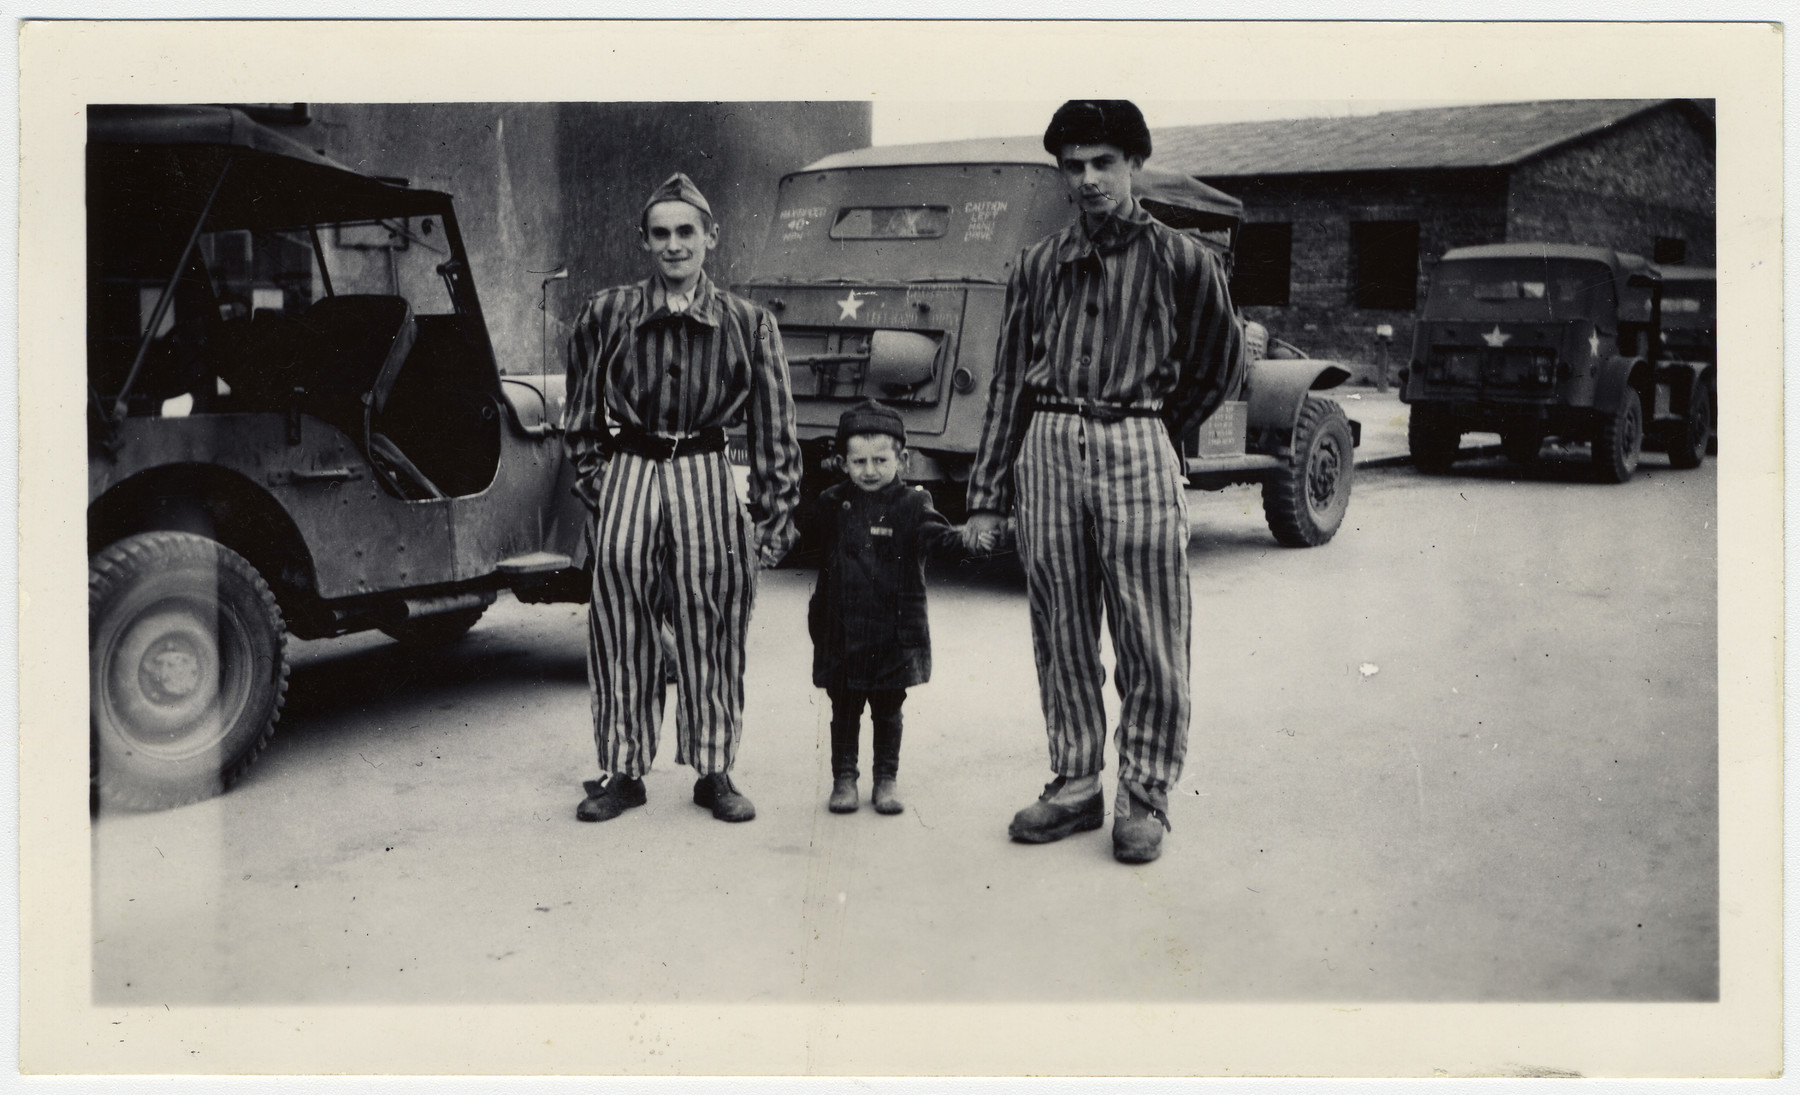 Josef Schleifstein poses with two survivors at Buchenwald.  Original caption reads:  Youngest person -- 4 yrs old 3 yrs in Buchenwald!